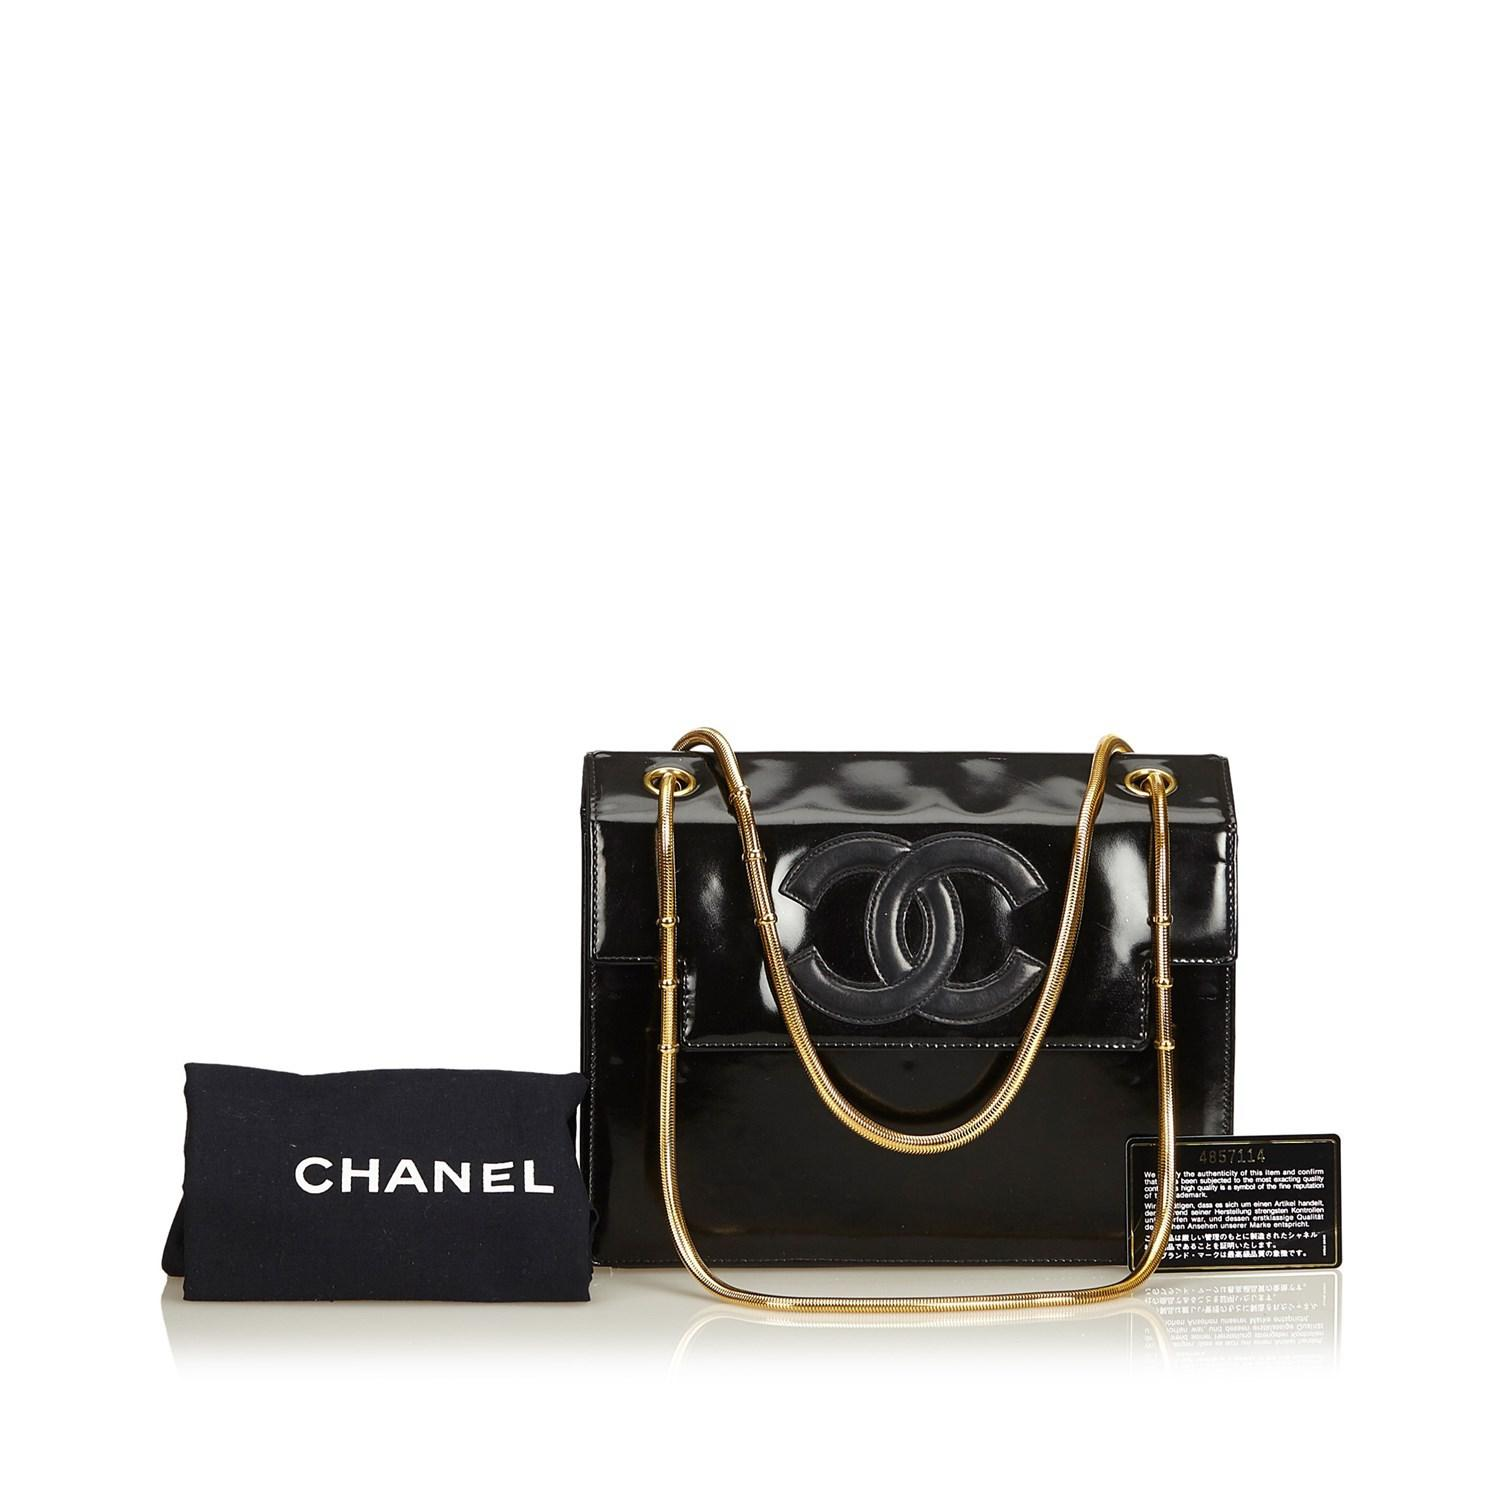 Lyst - Chanel Snake Chain Patent Leather Shoulder Bag in Black 52753aebd084b